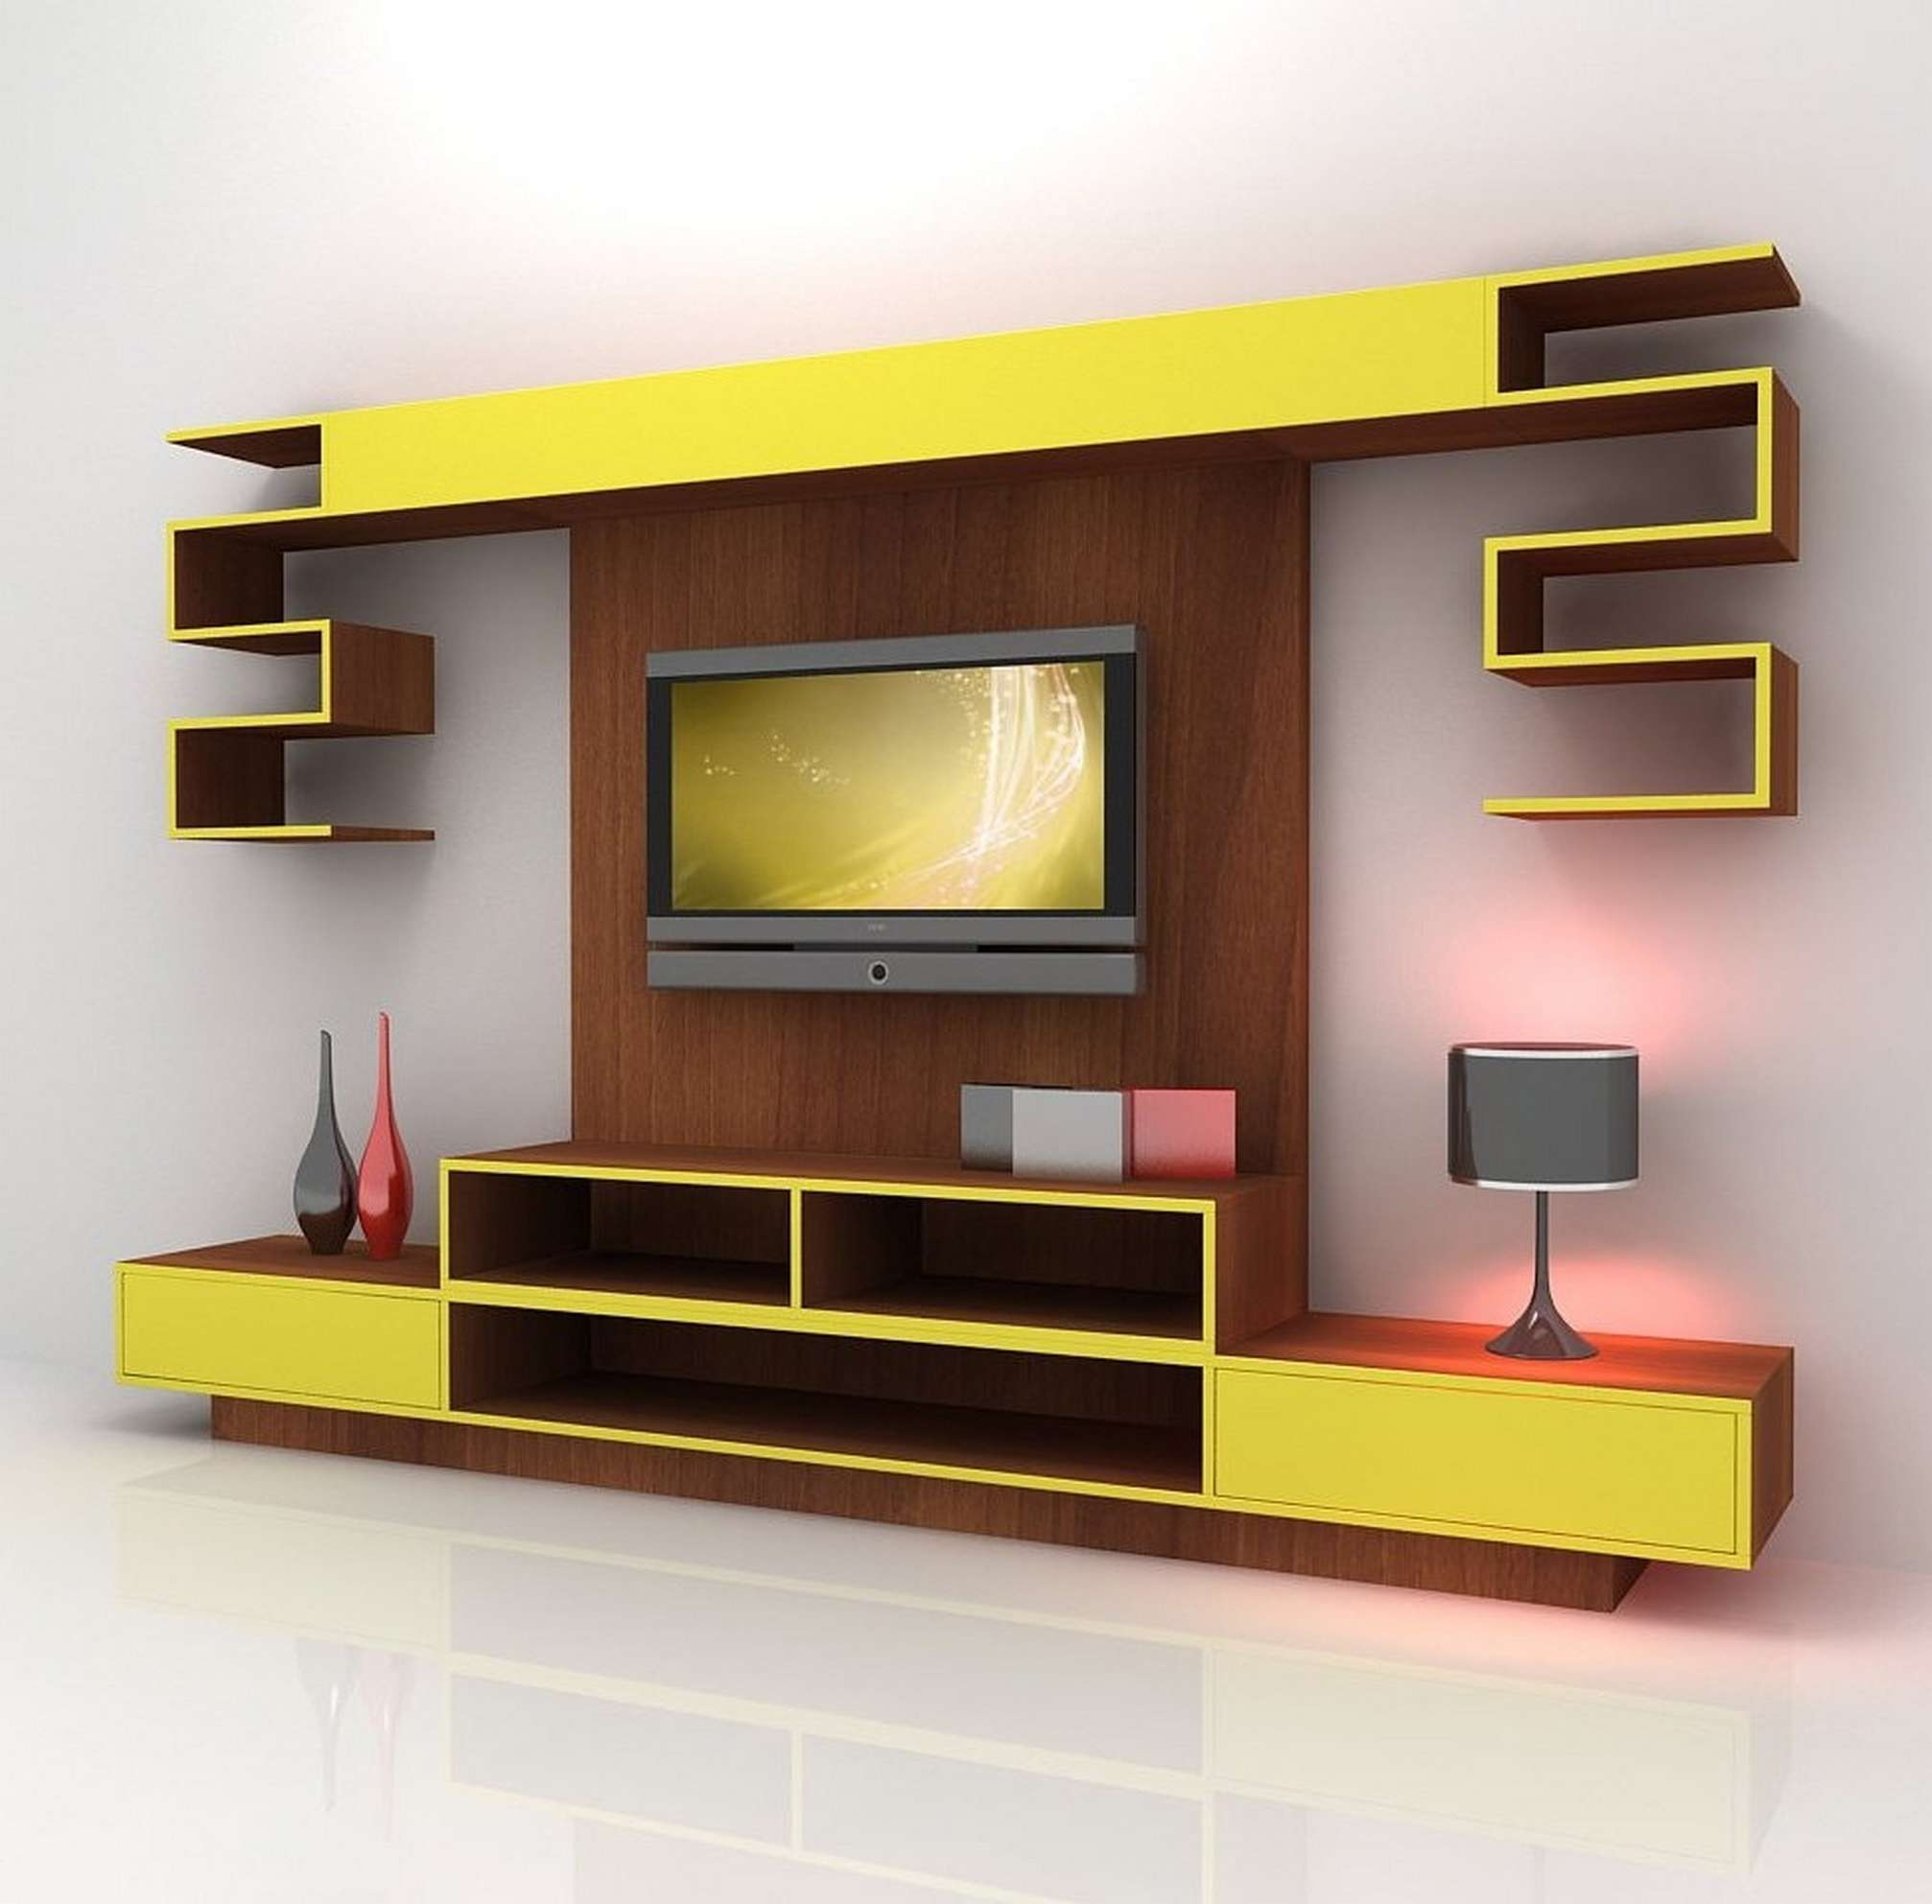 Living Room Ceilling Light Decor Wooden Table Ideas Modern Tv Regarding Modern Tv Cabinets Designs (View 18 of 20)